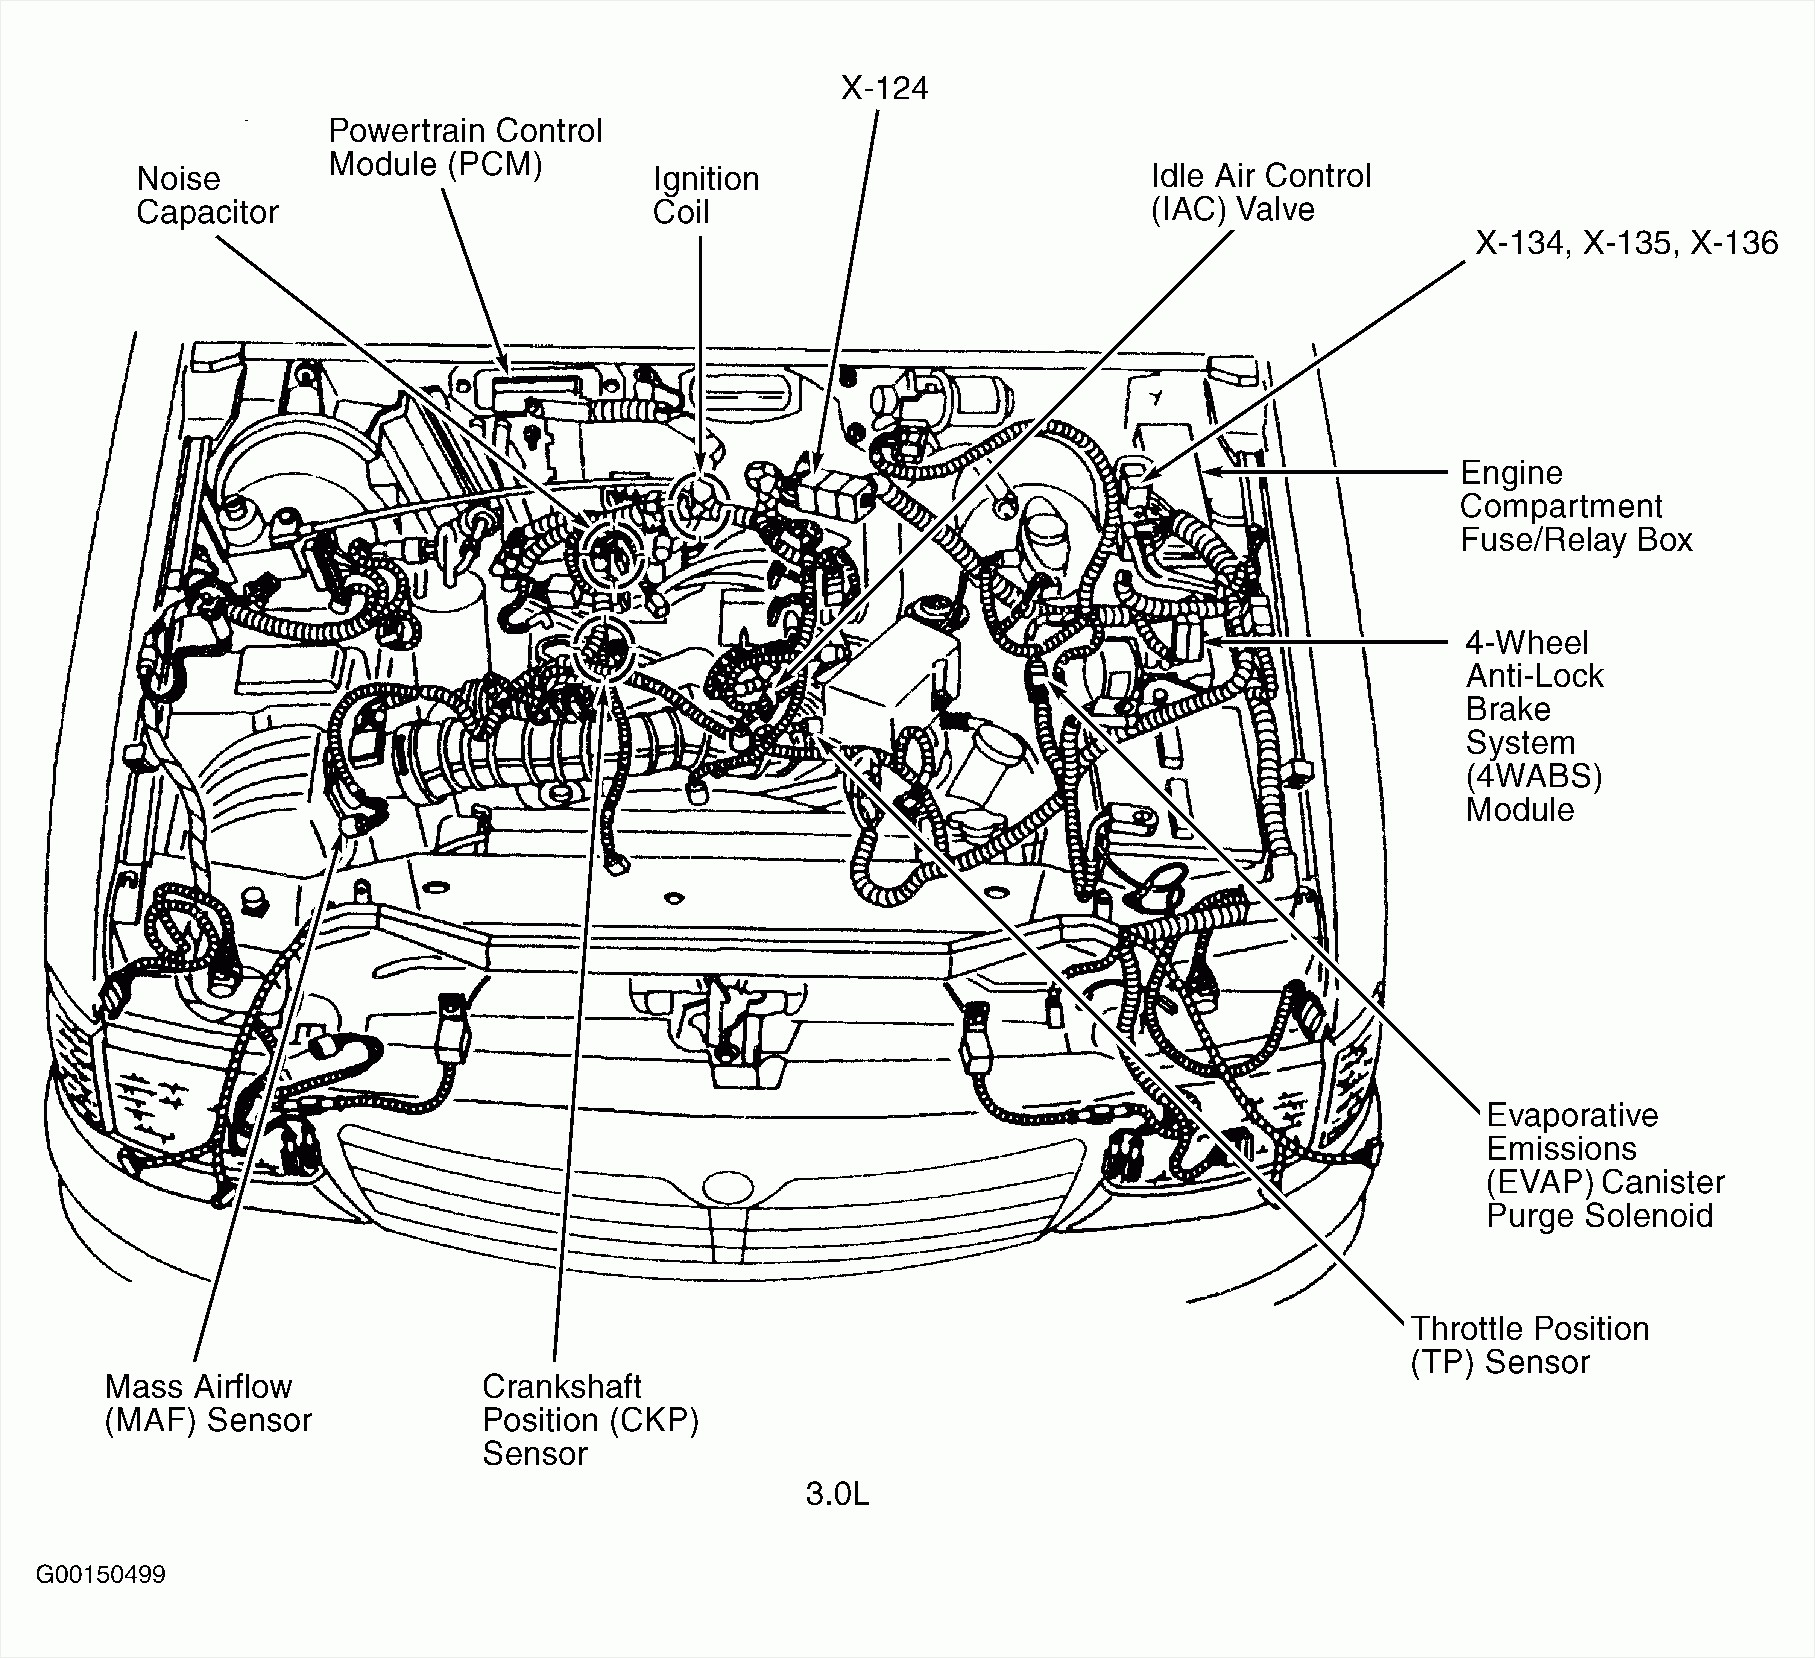 wiring diagrams likewise 2003 pt cruiser engine control module